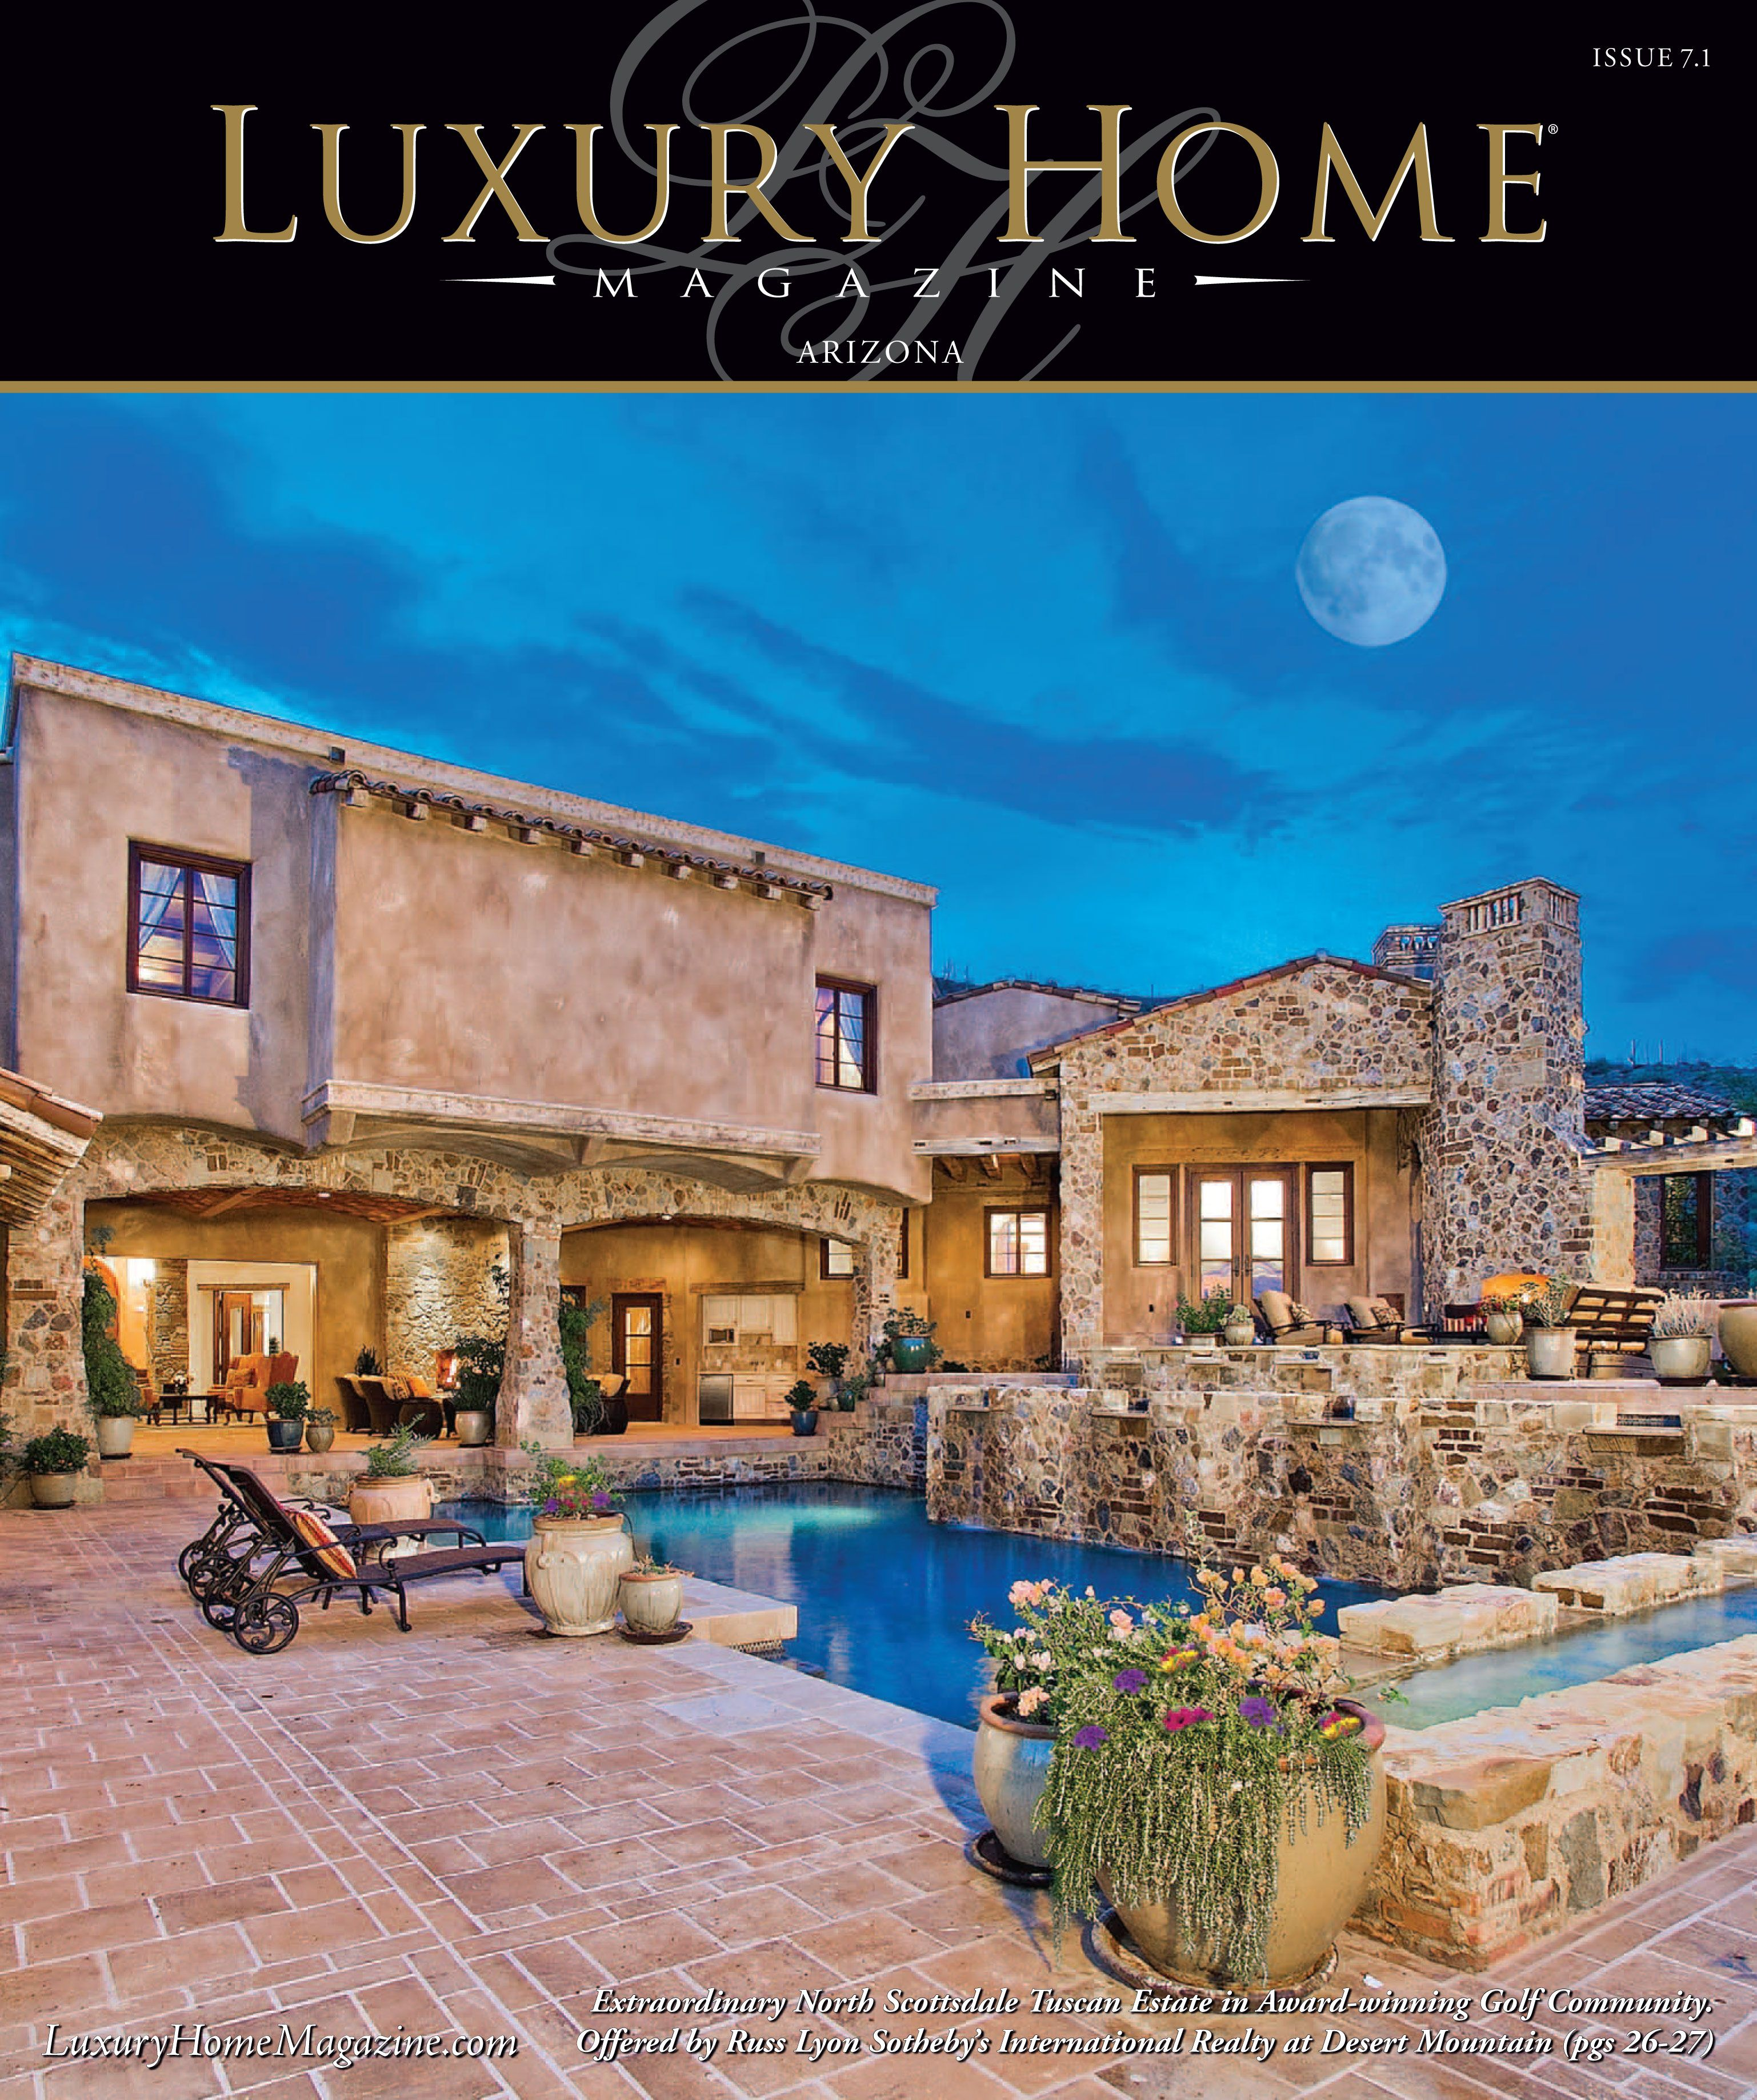 Luxury home magazine arizona issue cover photography by high